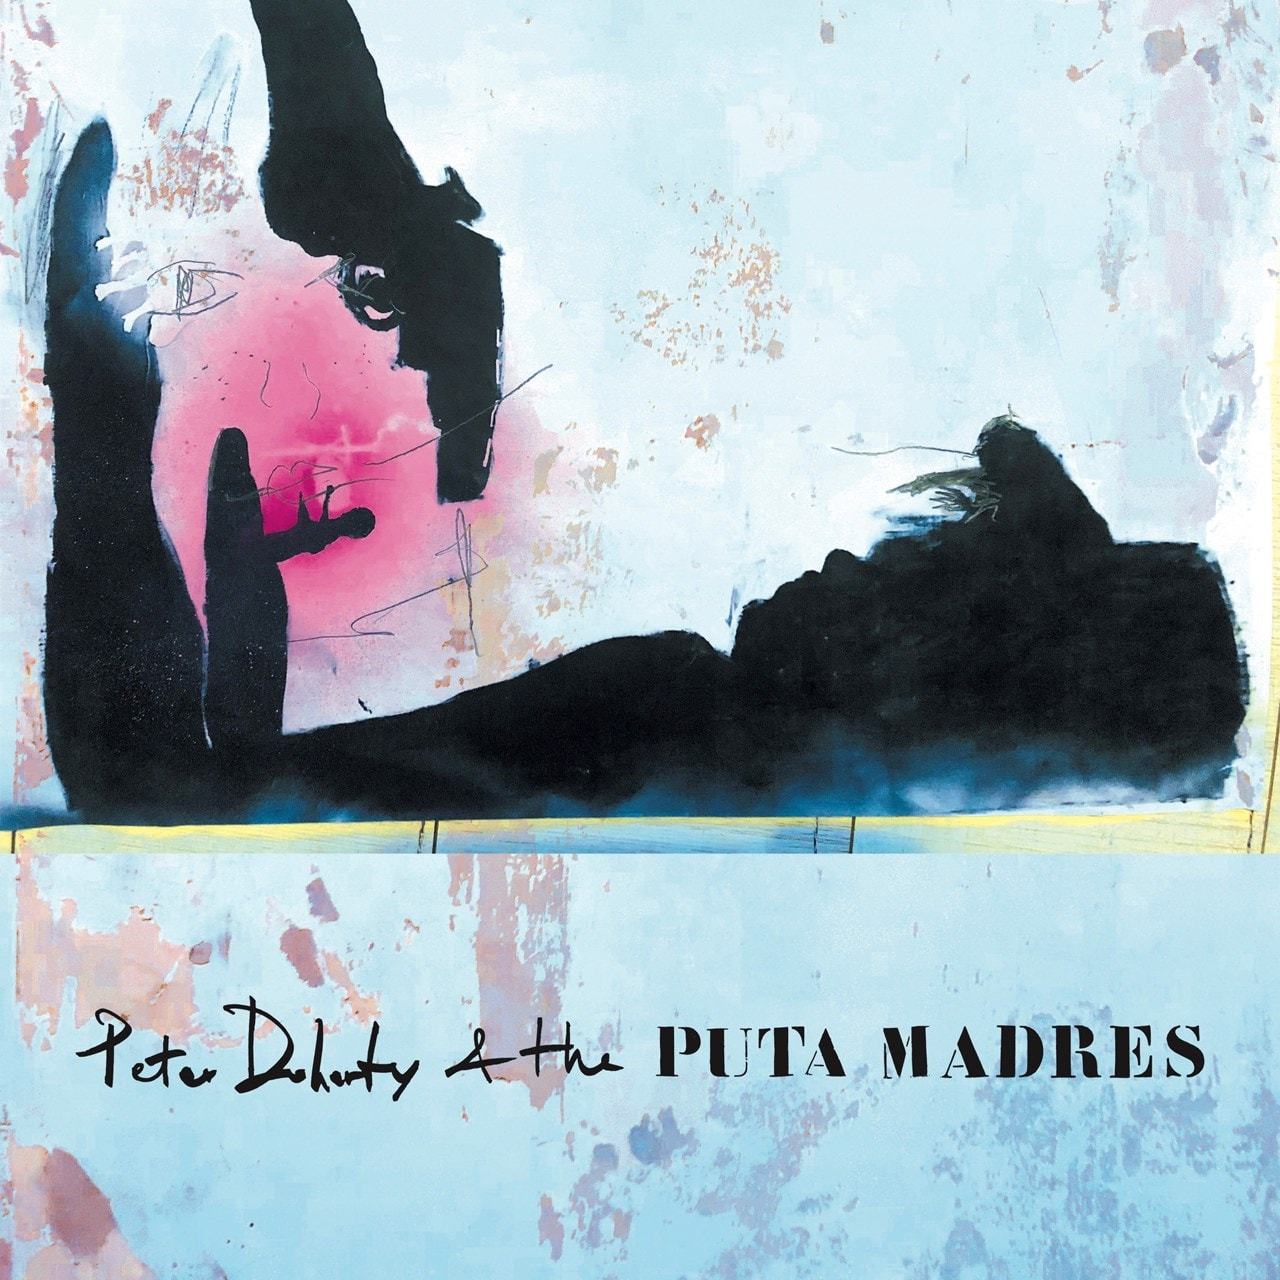 Peter Doherty & the Puta Madres - 1